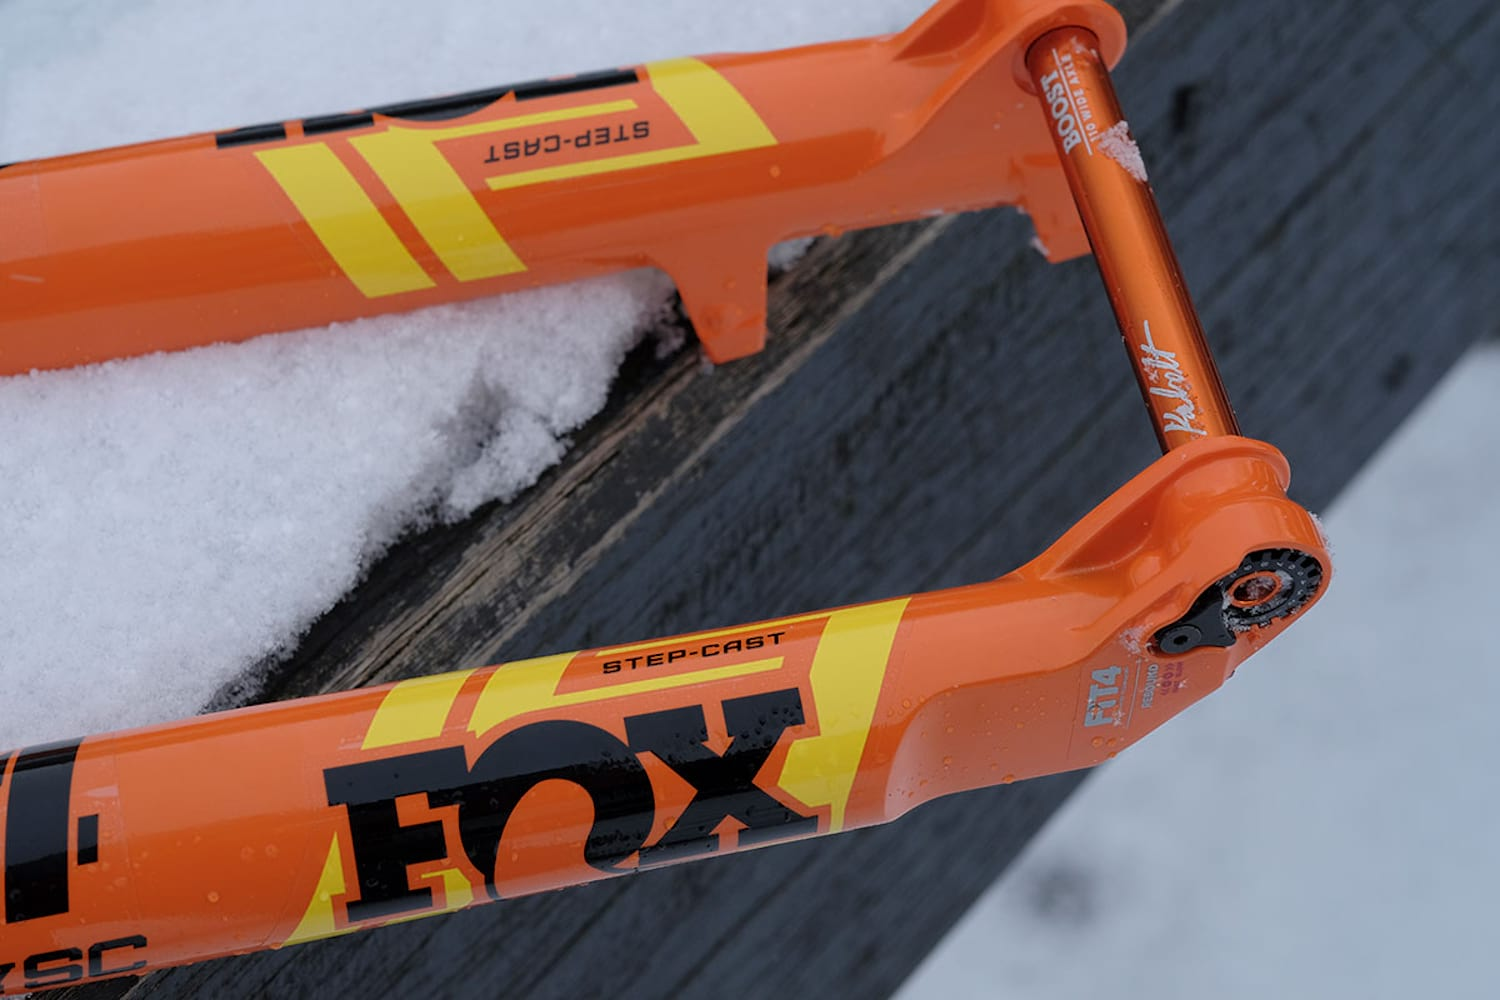 Review: Fox's brand new 34 Step-Cast fork is here from the